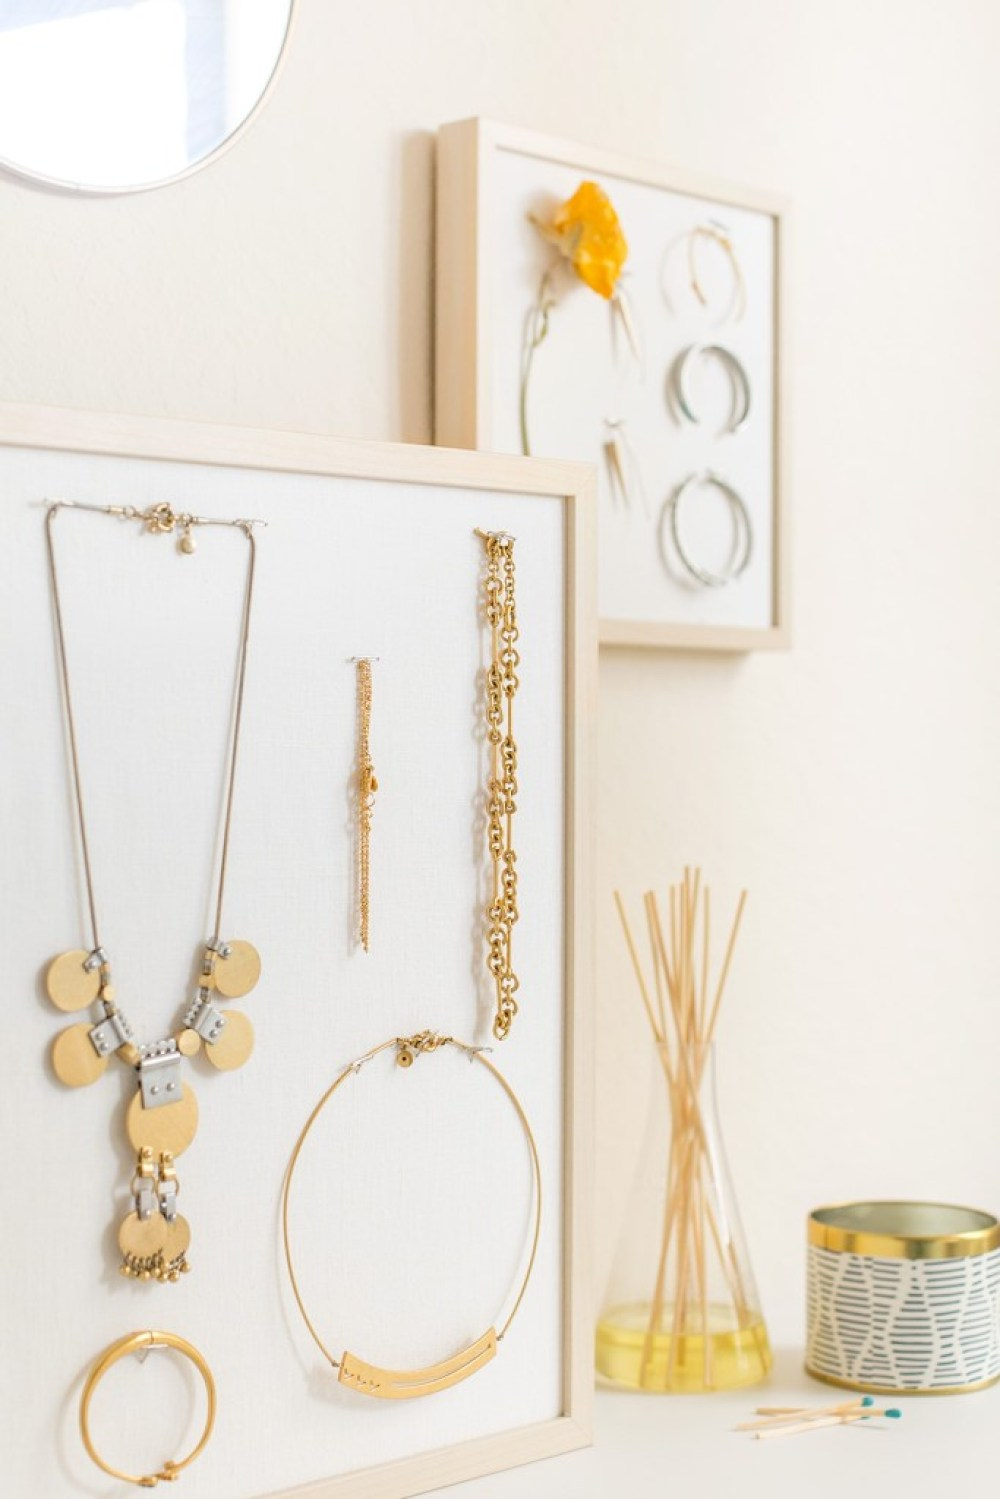 DIY Jewelry Stand   15 Stylish DIY Projects for Organizing Your Home #organizing #diy #diyhome #clutterbustingtips